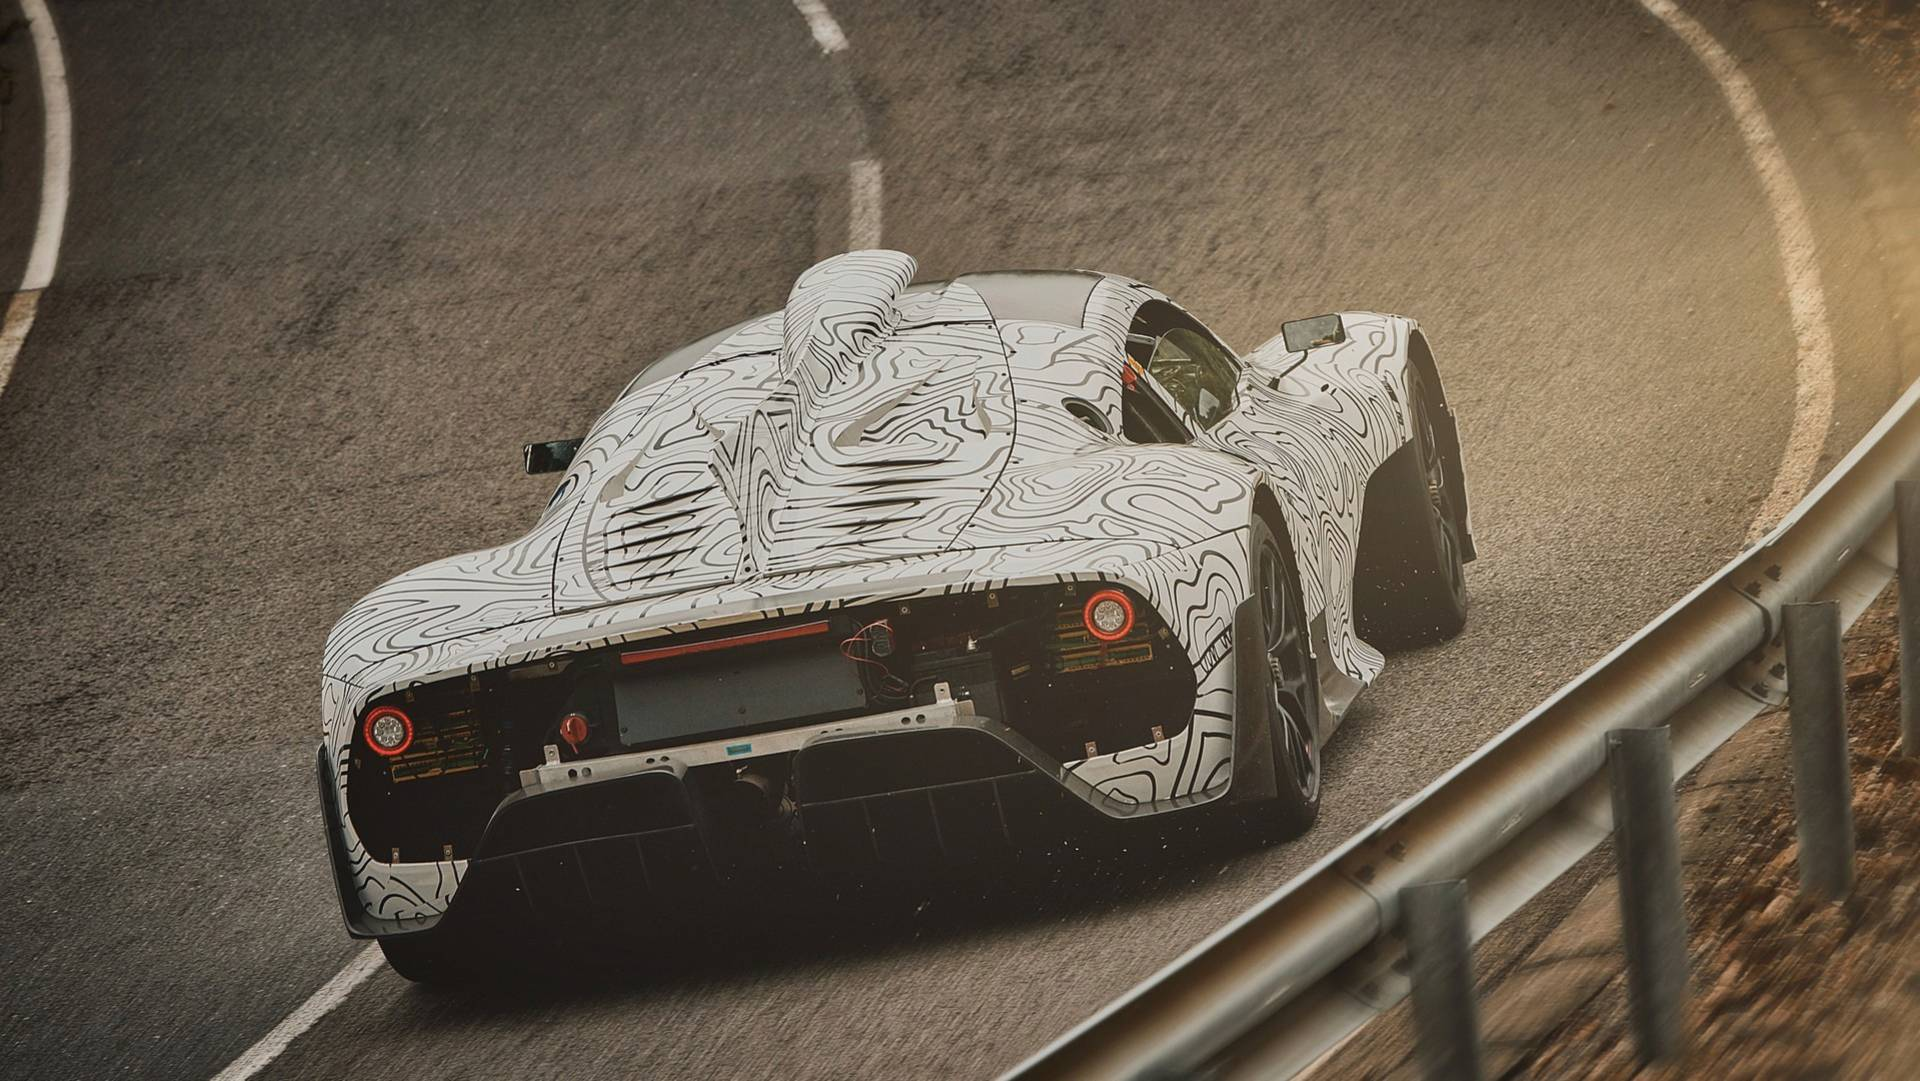 Merecdes-AMG_Project One_testing_0003